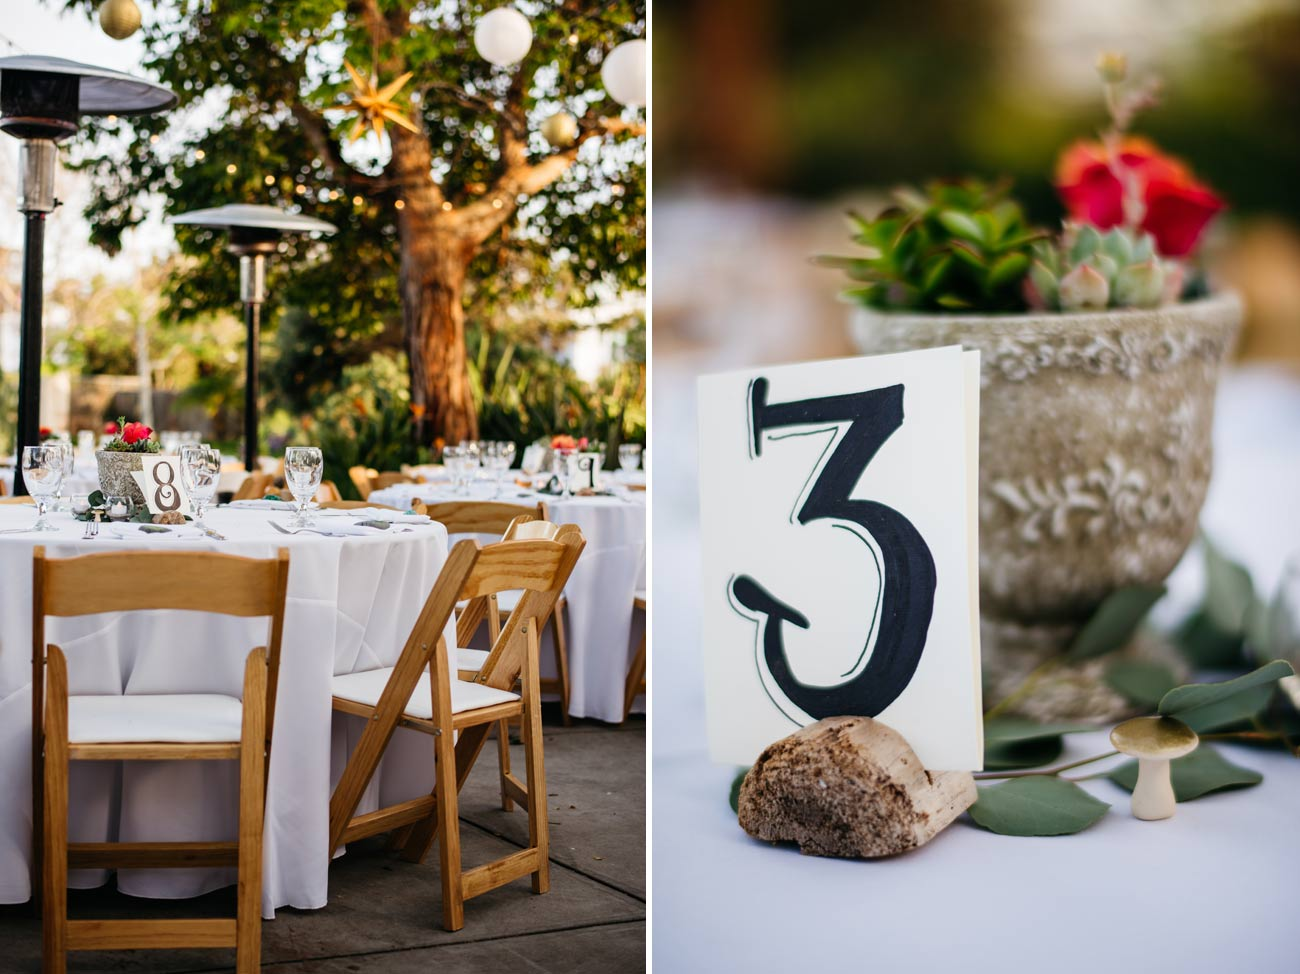 levyland estate tablescape and decor inspiration socal beach weddings